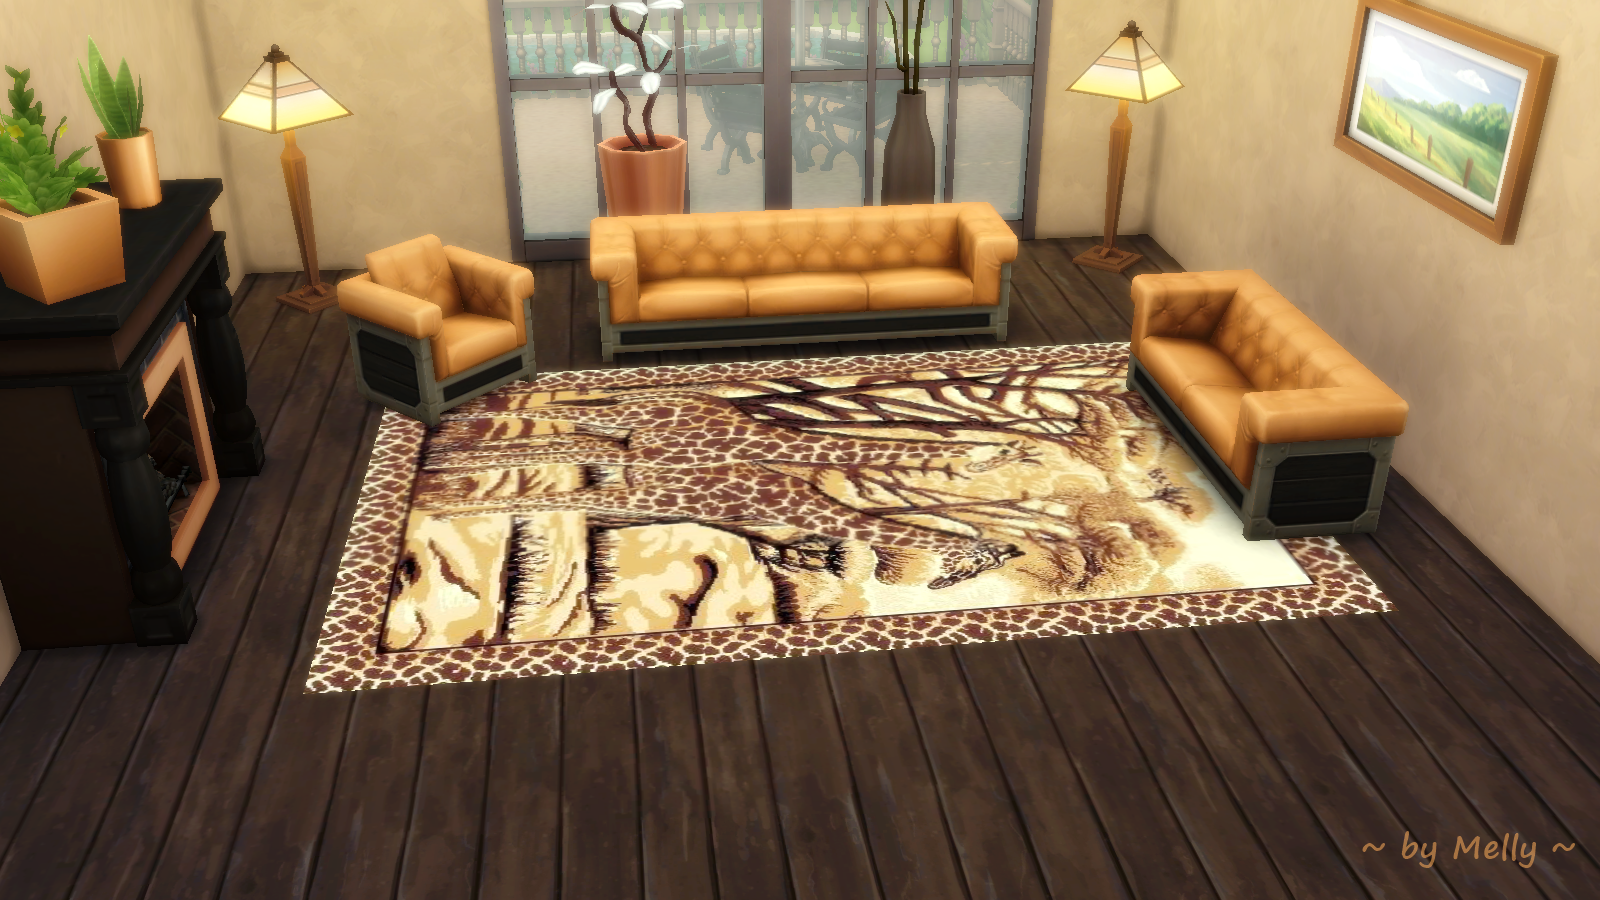 Sims 2 Teppiche Sims Houses By Melly Rugs 008 Afrika Style